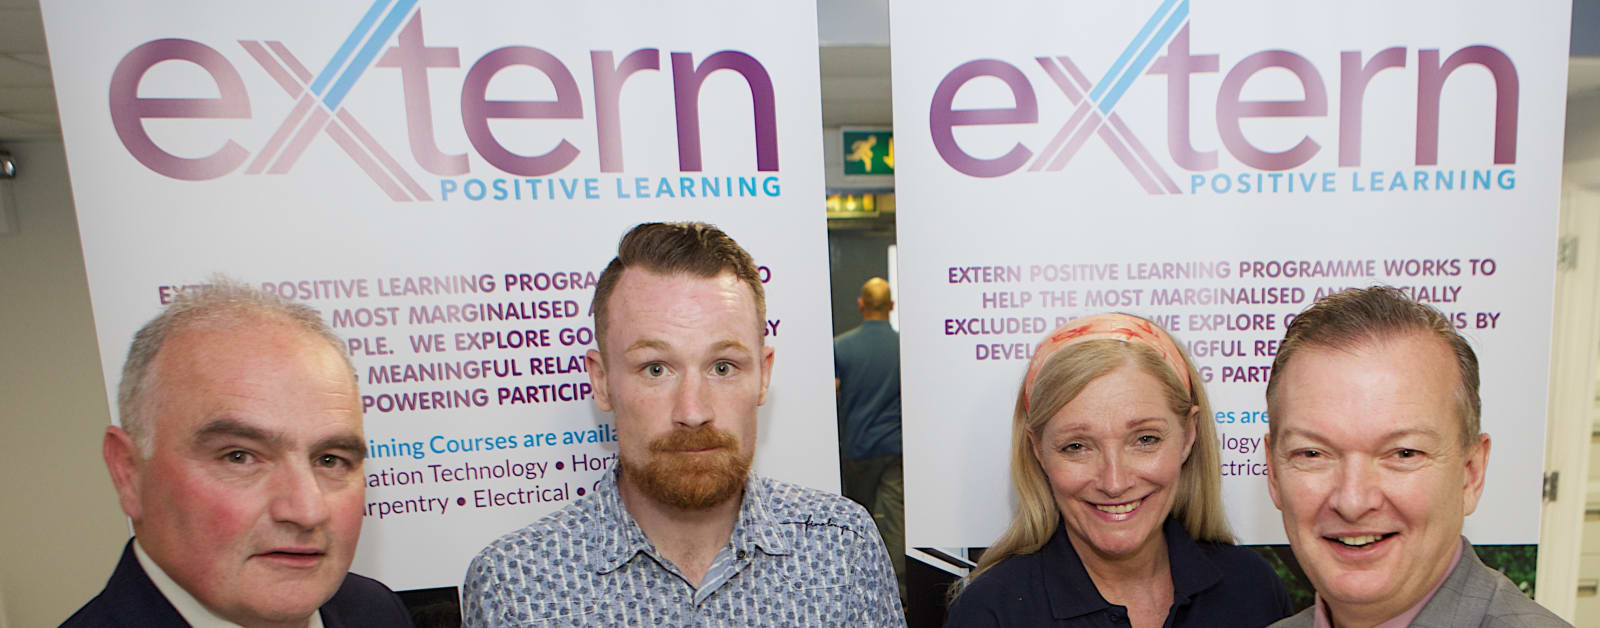 Extern to roll out new Positive Learning cross-border project in North-West region